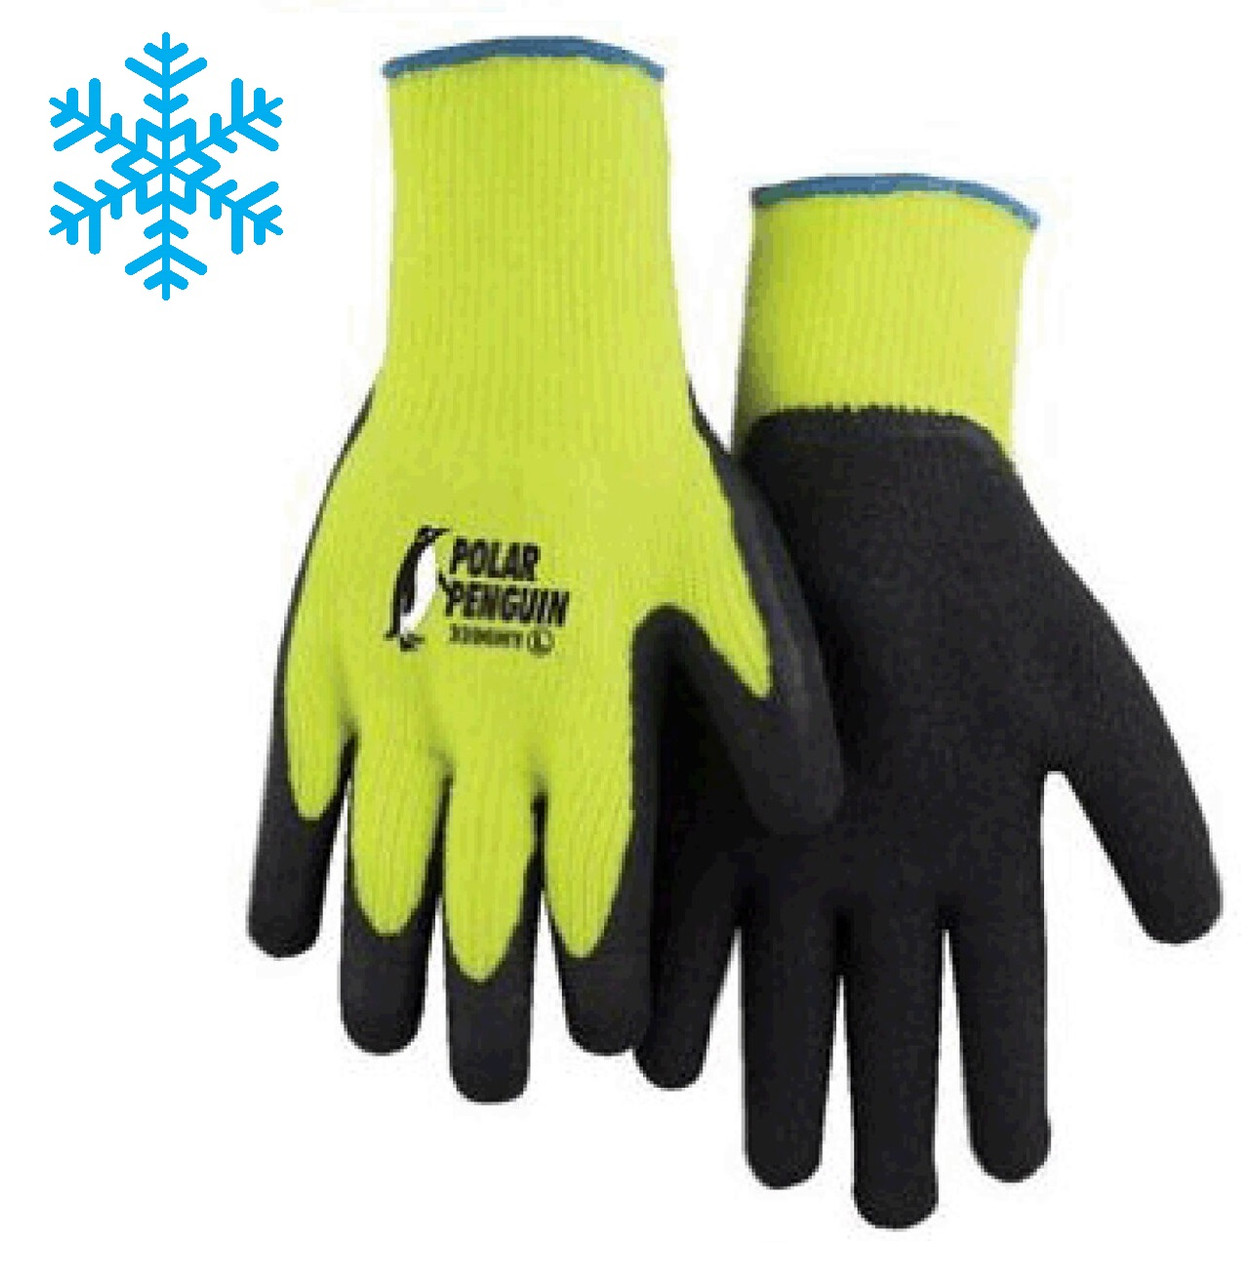 WINTER HI-VIS YELLOW KNIT RUBBER PALM GLOVE - Insulated Gloves  ## 3396HY ##